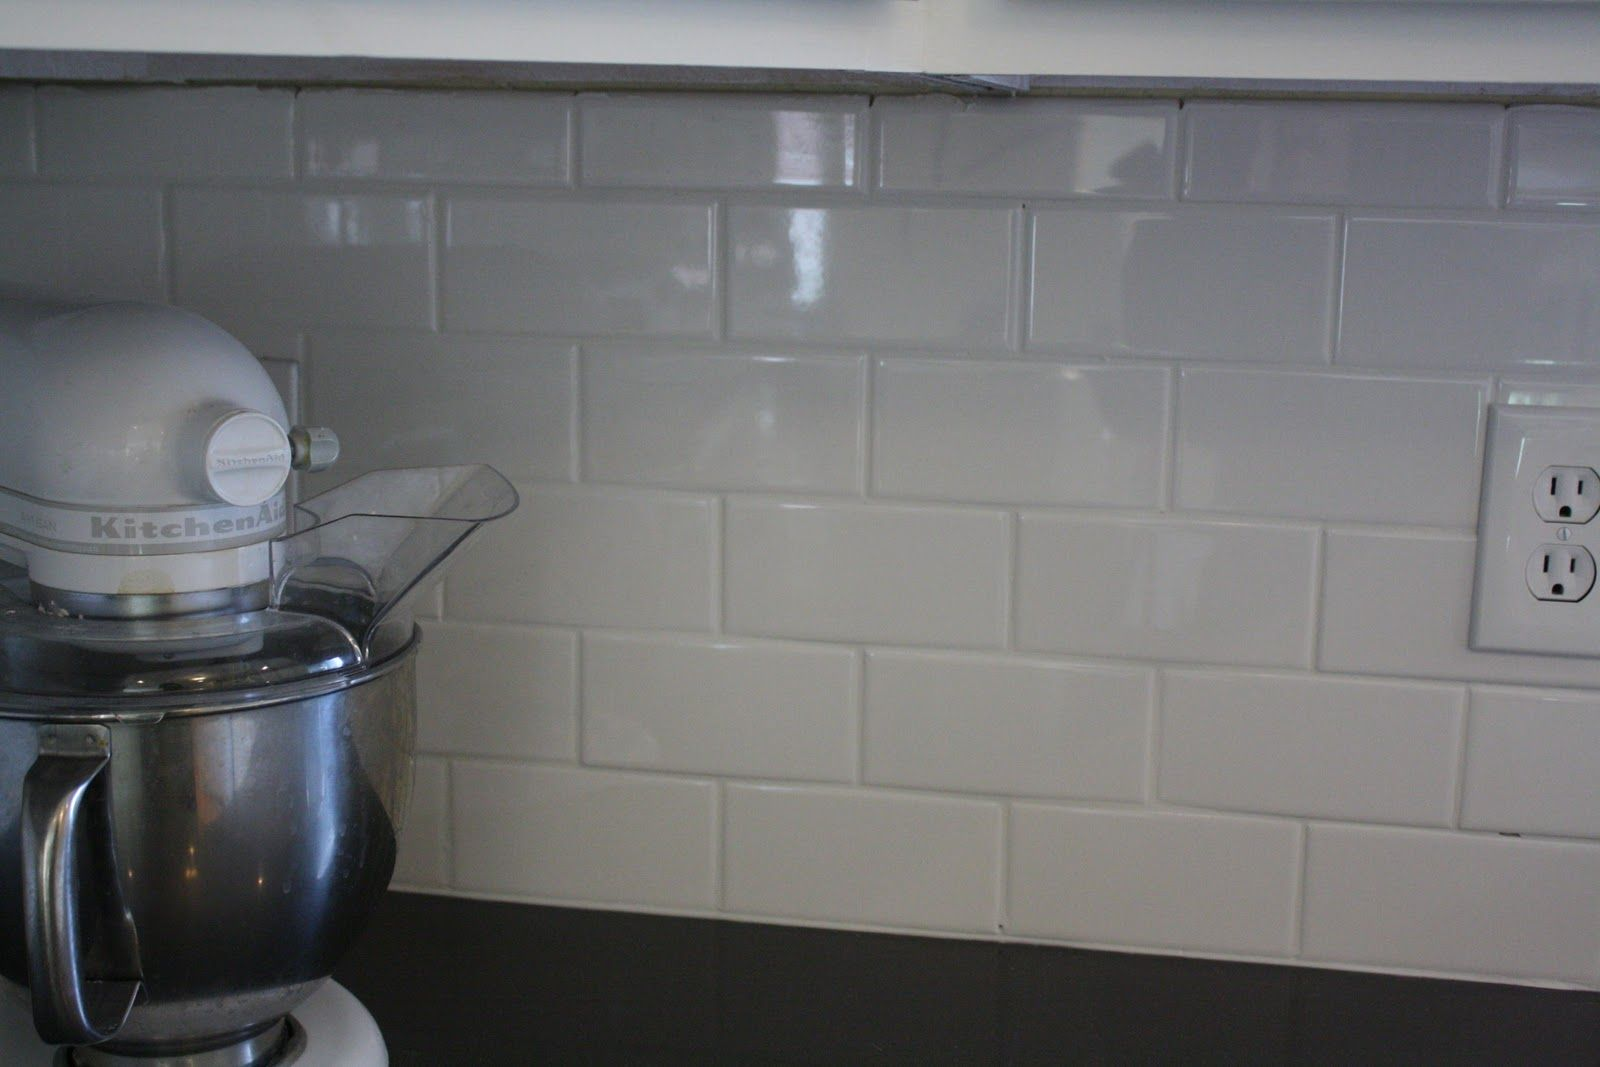 12 subway tile backsplash design ideas installation tips subway 12 subway tile backsplash design ideas installation tips dailygadgetfo Choice Image